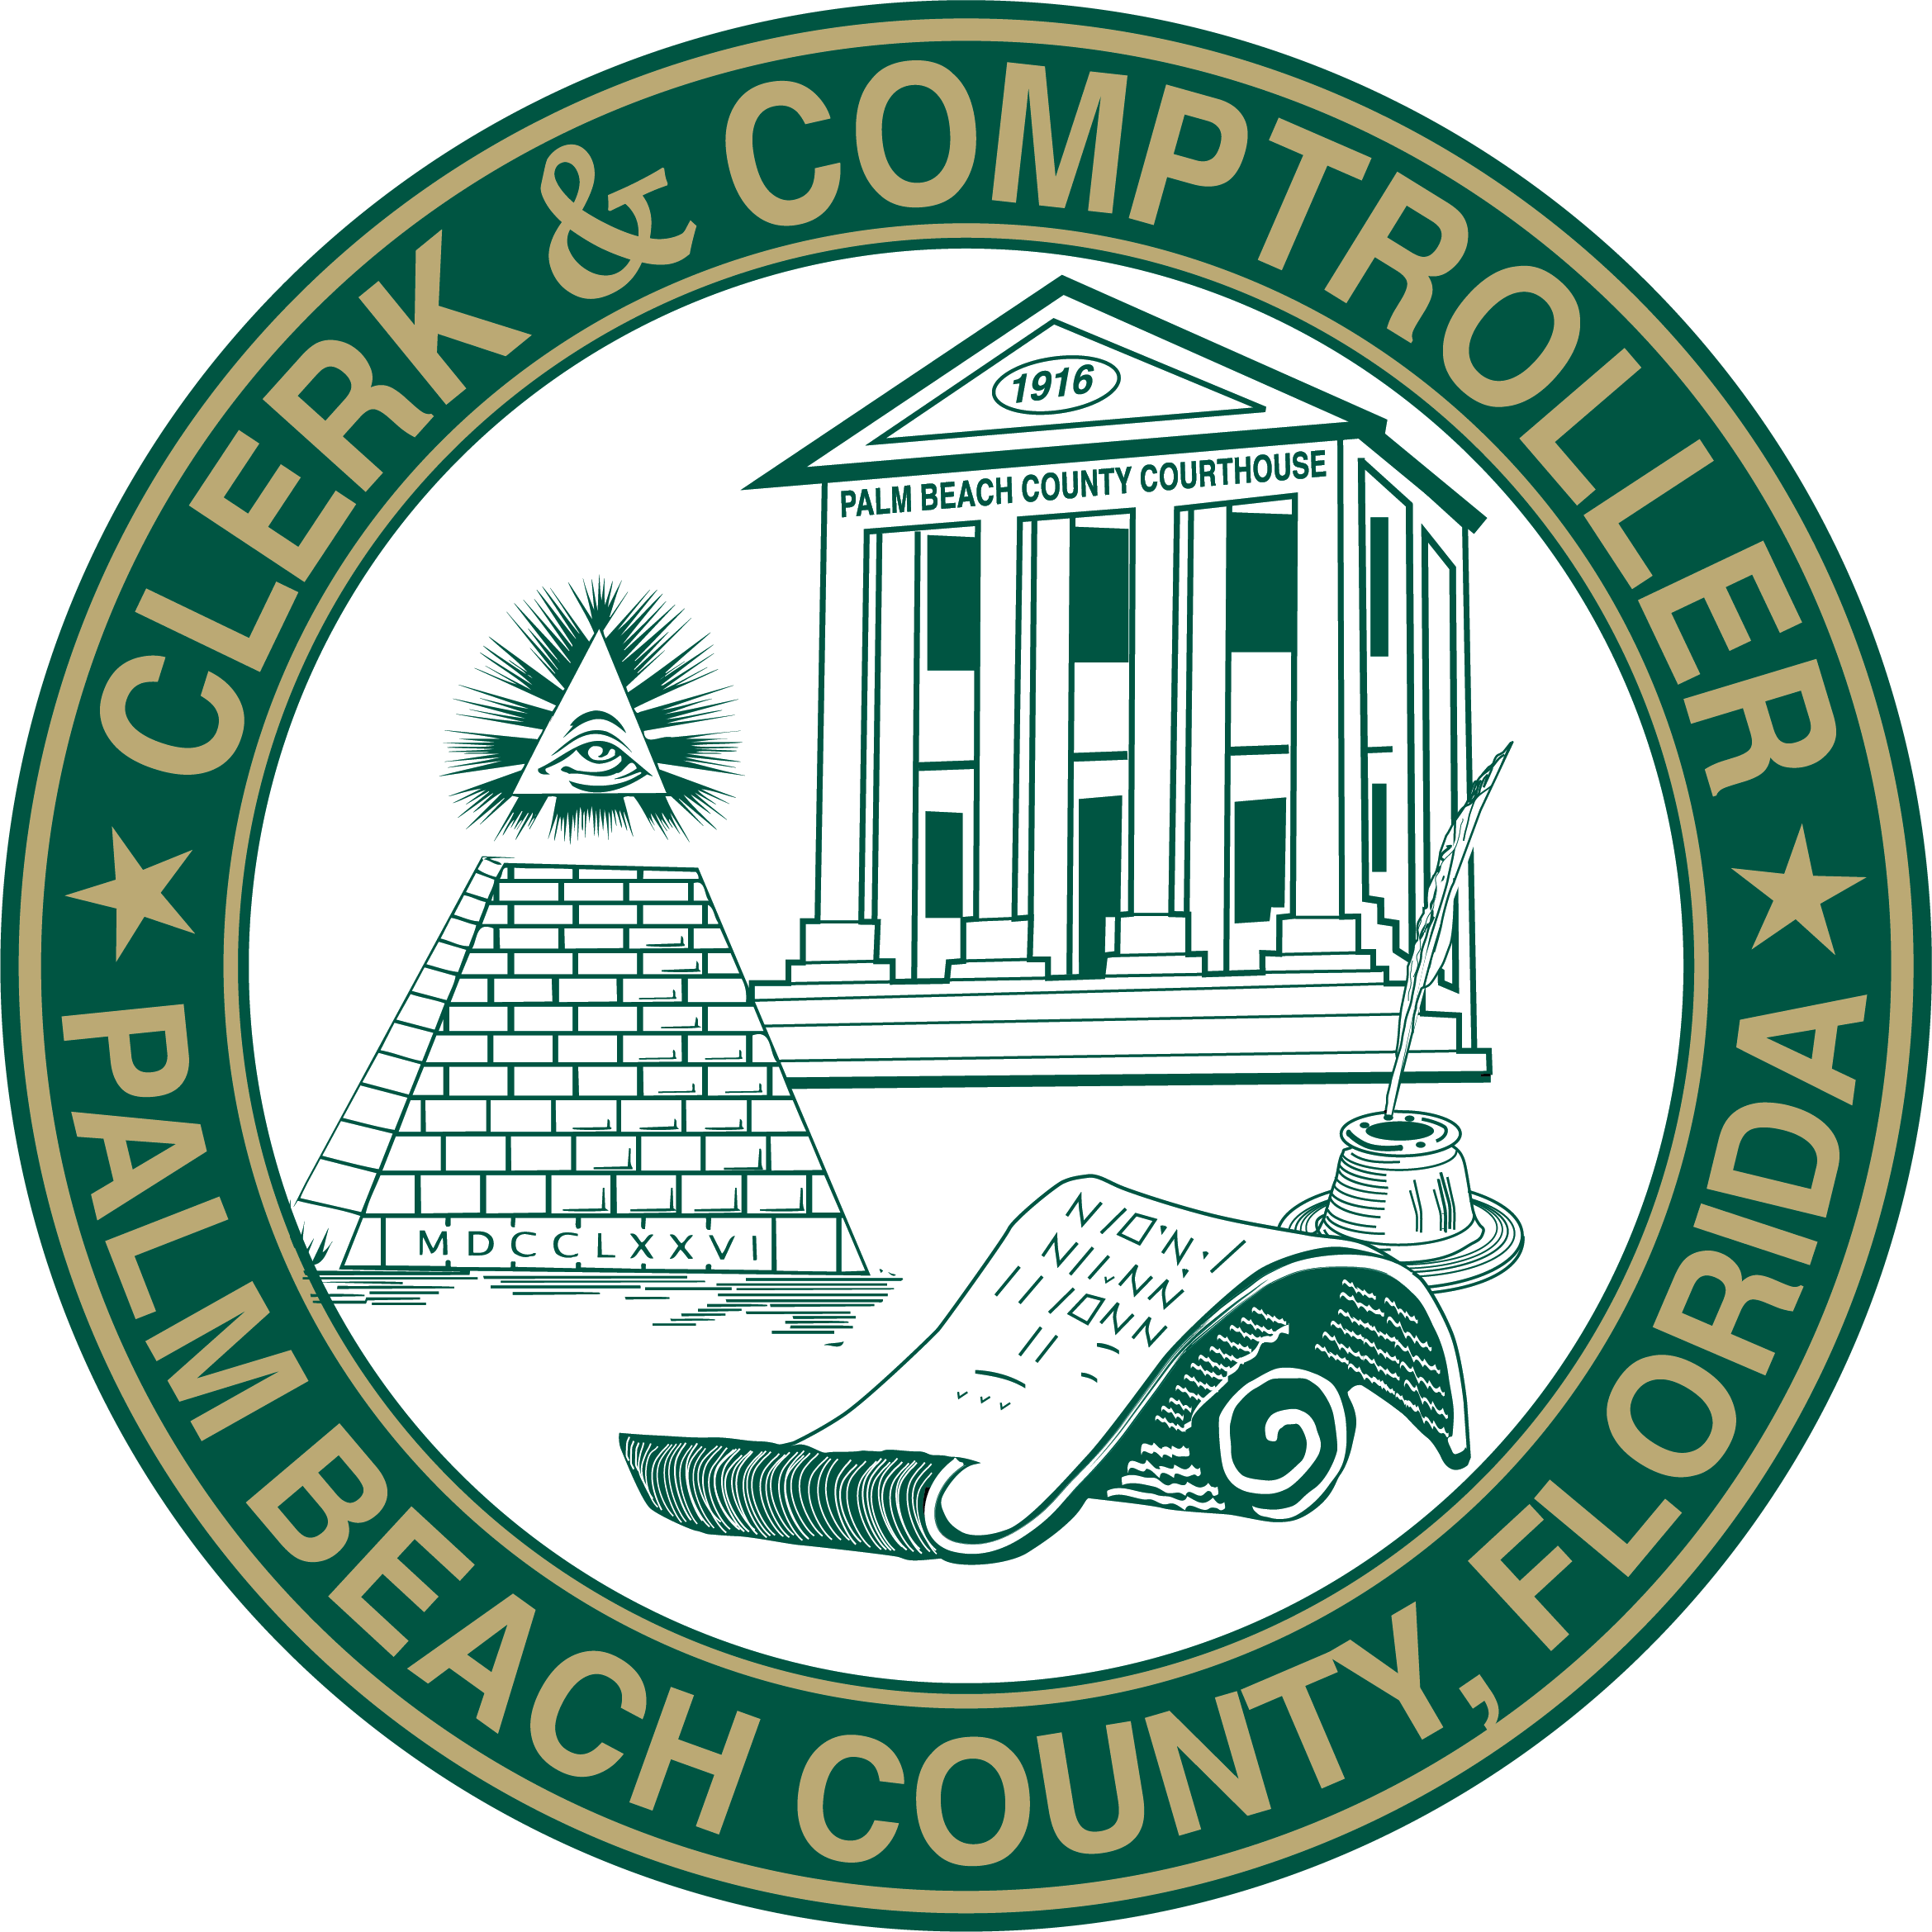 Clerks for Pies (Clerk & Comptroller, Palm Beach County)